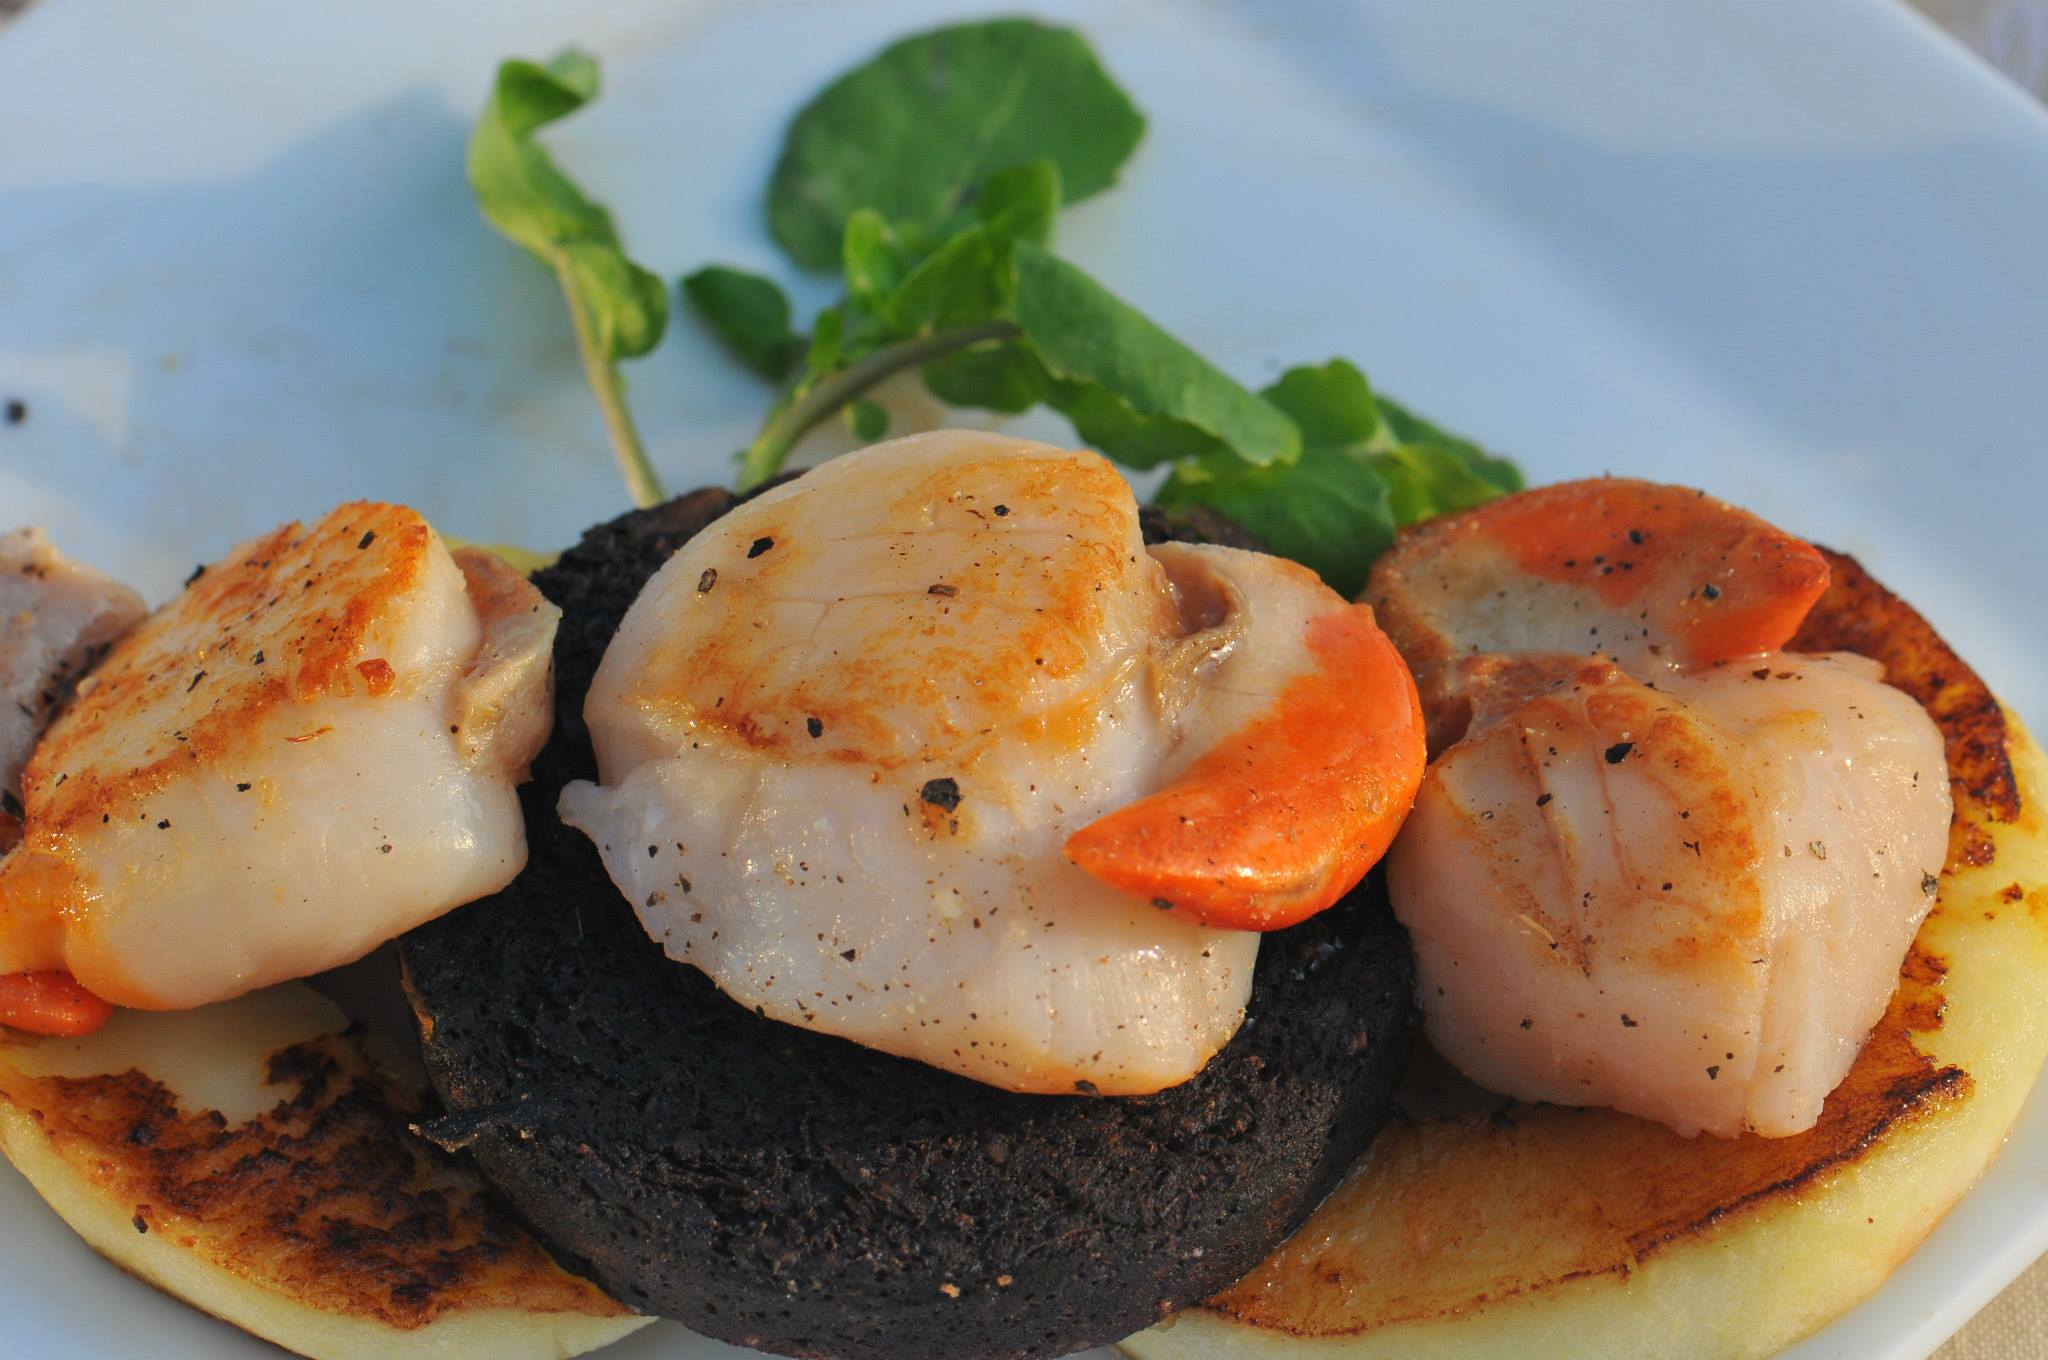 Scallops & Black Pudding prepared by Home Farm B&B, Muir of Ord